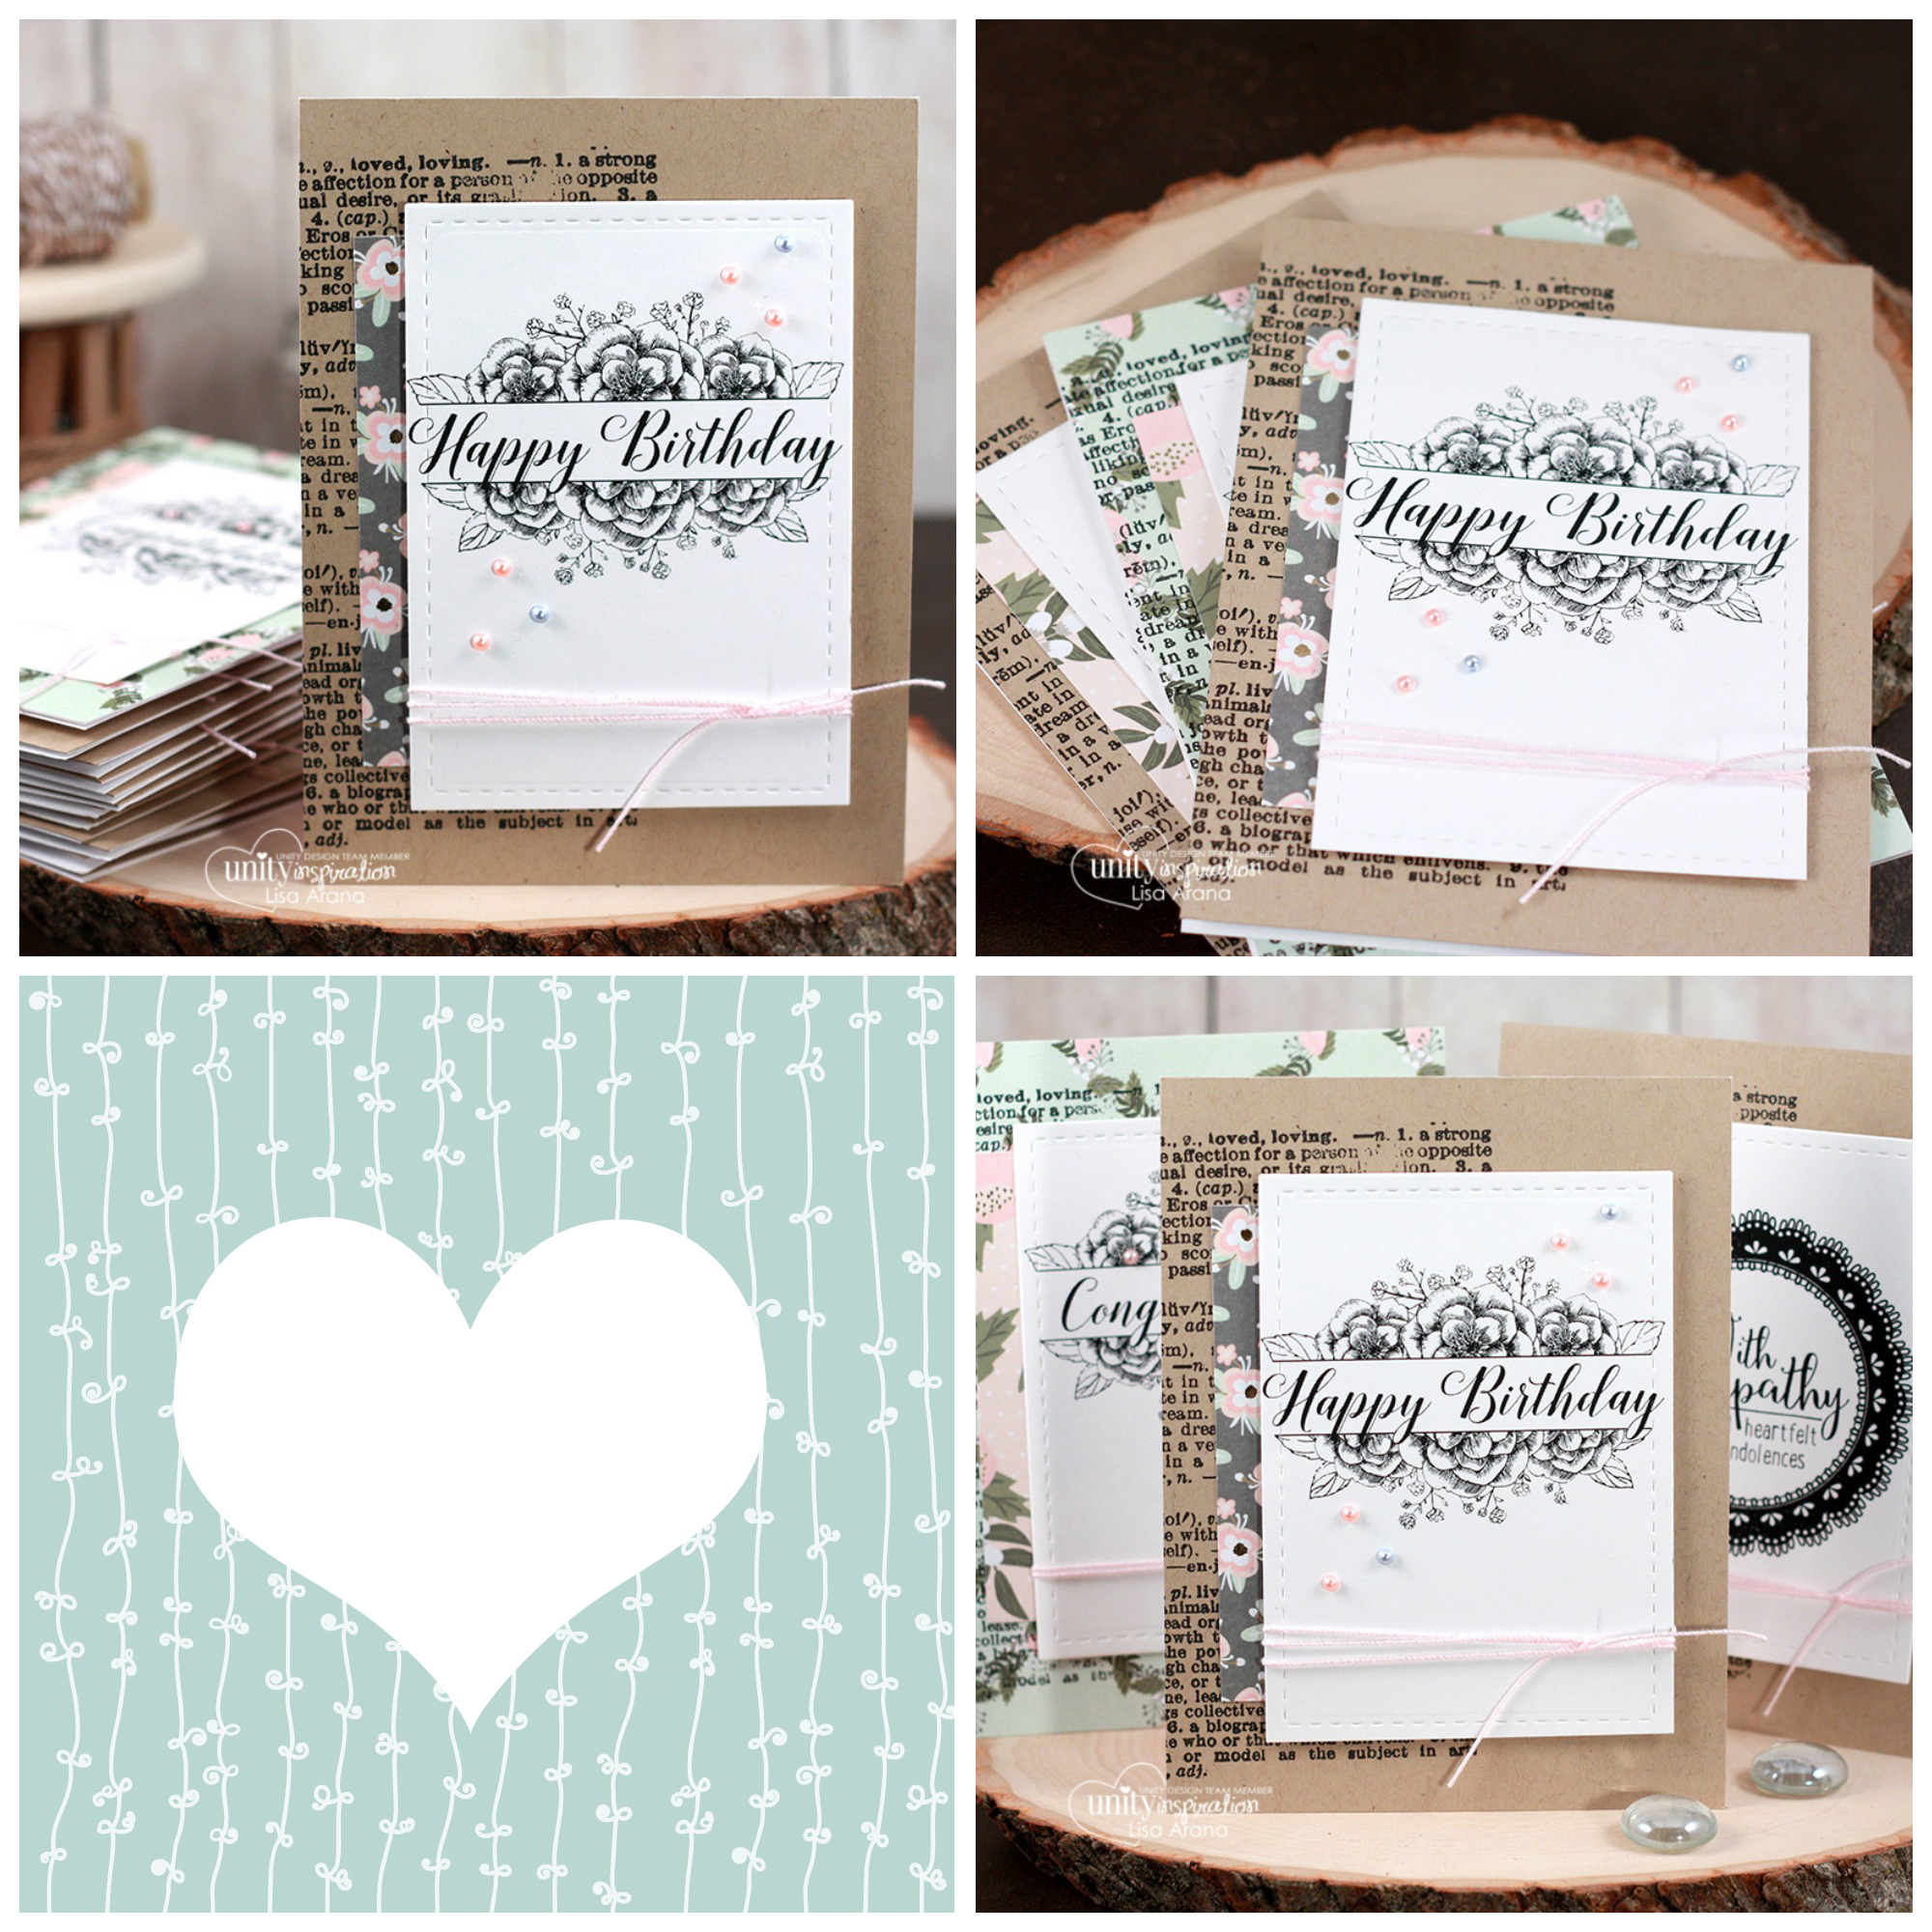 Sharing a set of handmade cards for all occasions using Special Wishes by Unity Stamp Company. #cardmaking #cardmaker #cards #stamping #dahlhousedesigns #unitystampco #handmadecards #diecutting #diy #stationary